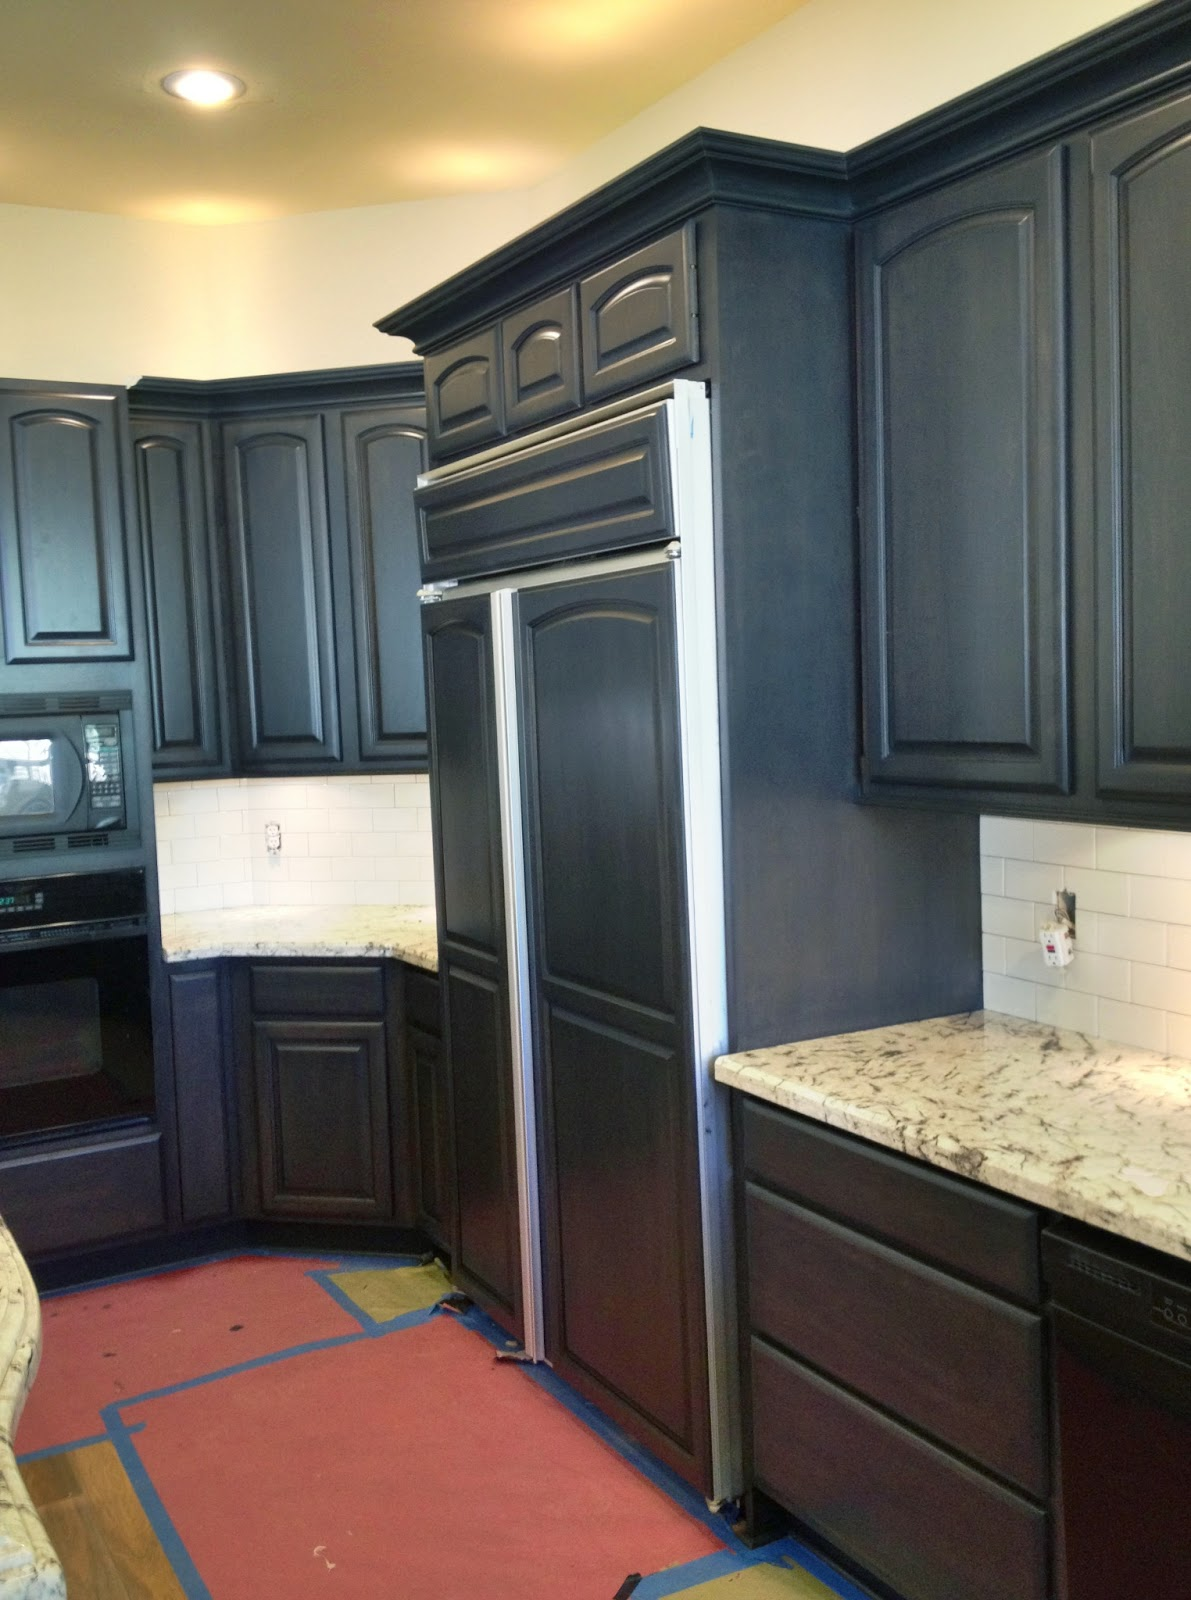 The Glamorous How To Refinish Kitchen Cabinets Without Stripping Ideas